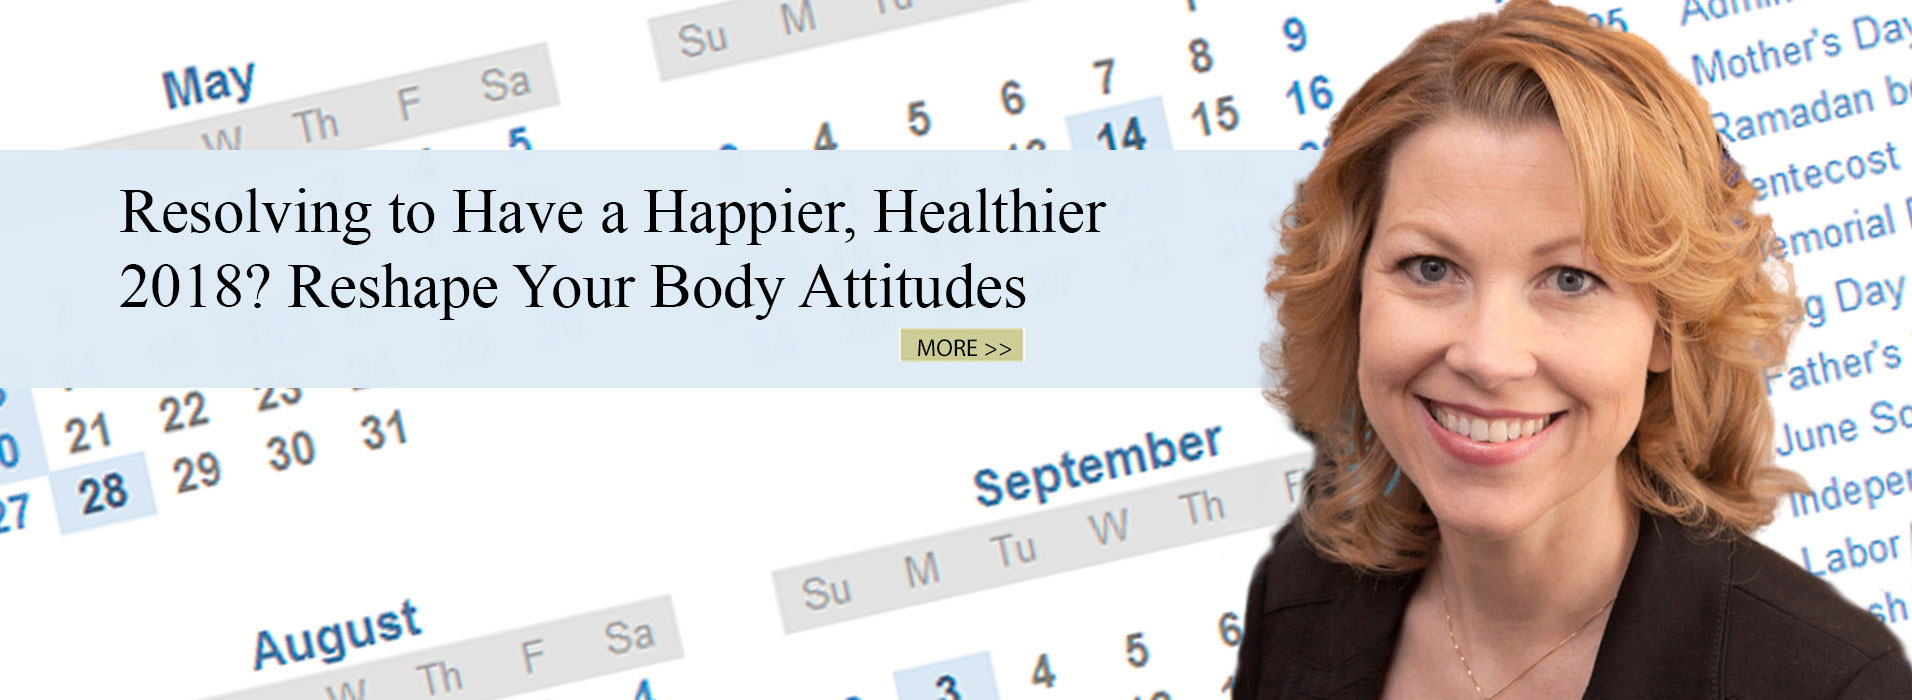 Resolving to Have a Happier, Healthier 2018? Reshape Your Body Attitudes